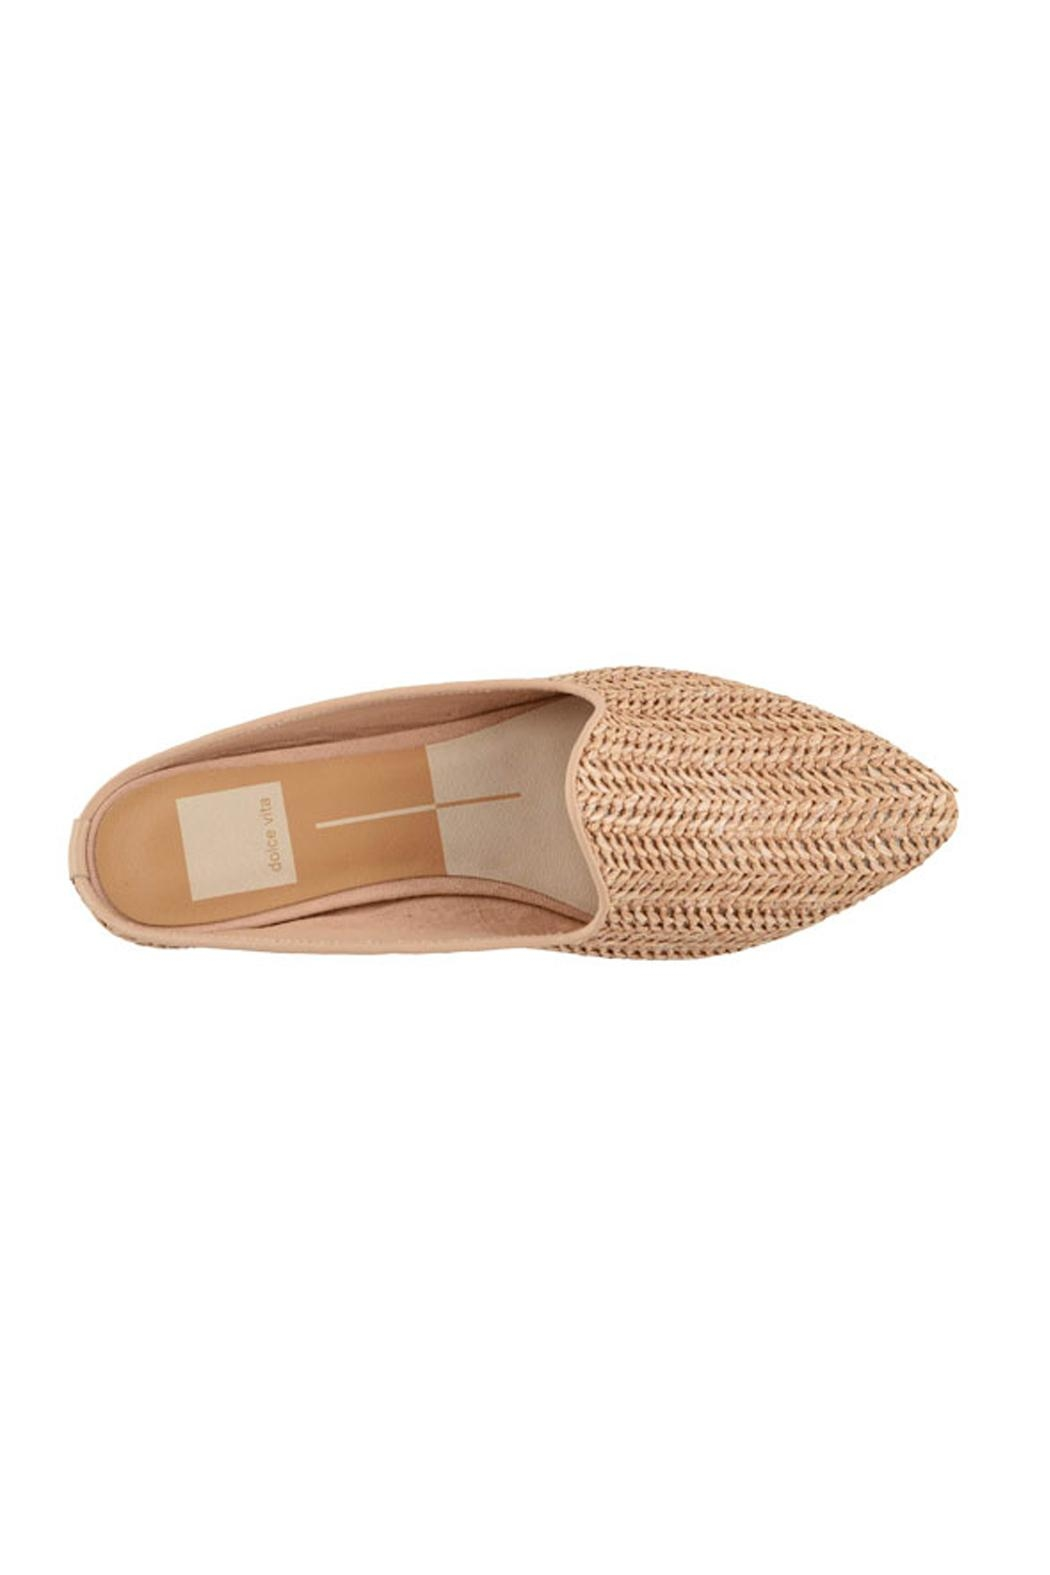 Dolce Vita Woven Grant Mule - Front Full Image